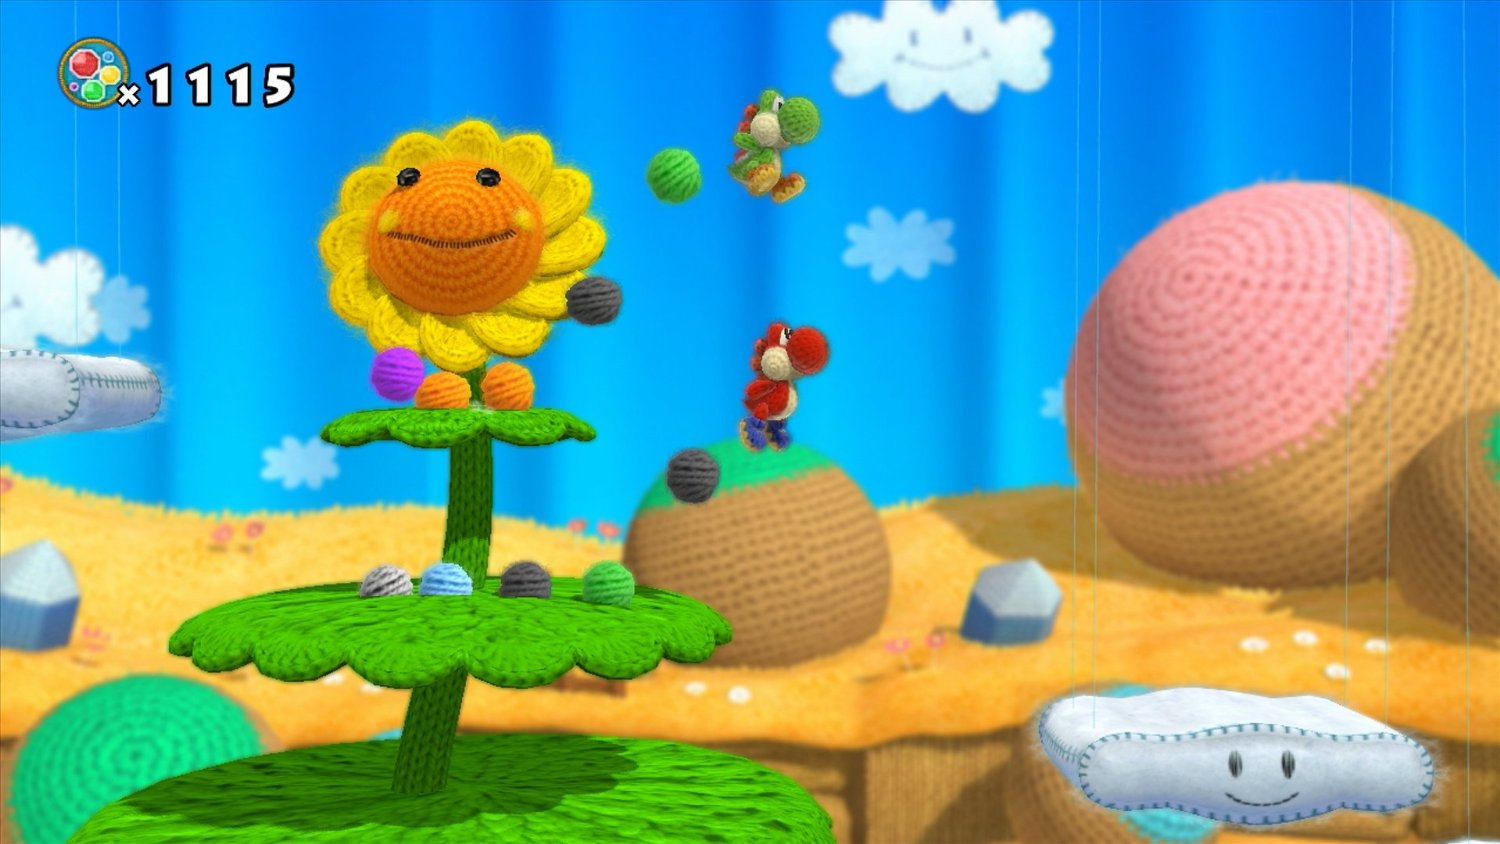 WATCH: Yoshi's Woolly World Gameplay